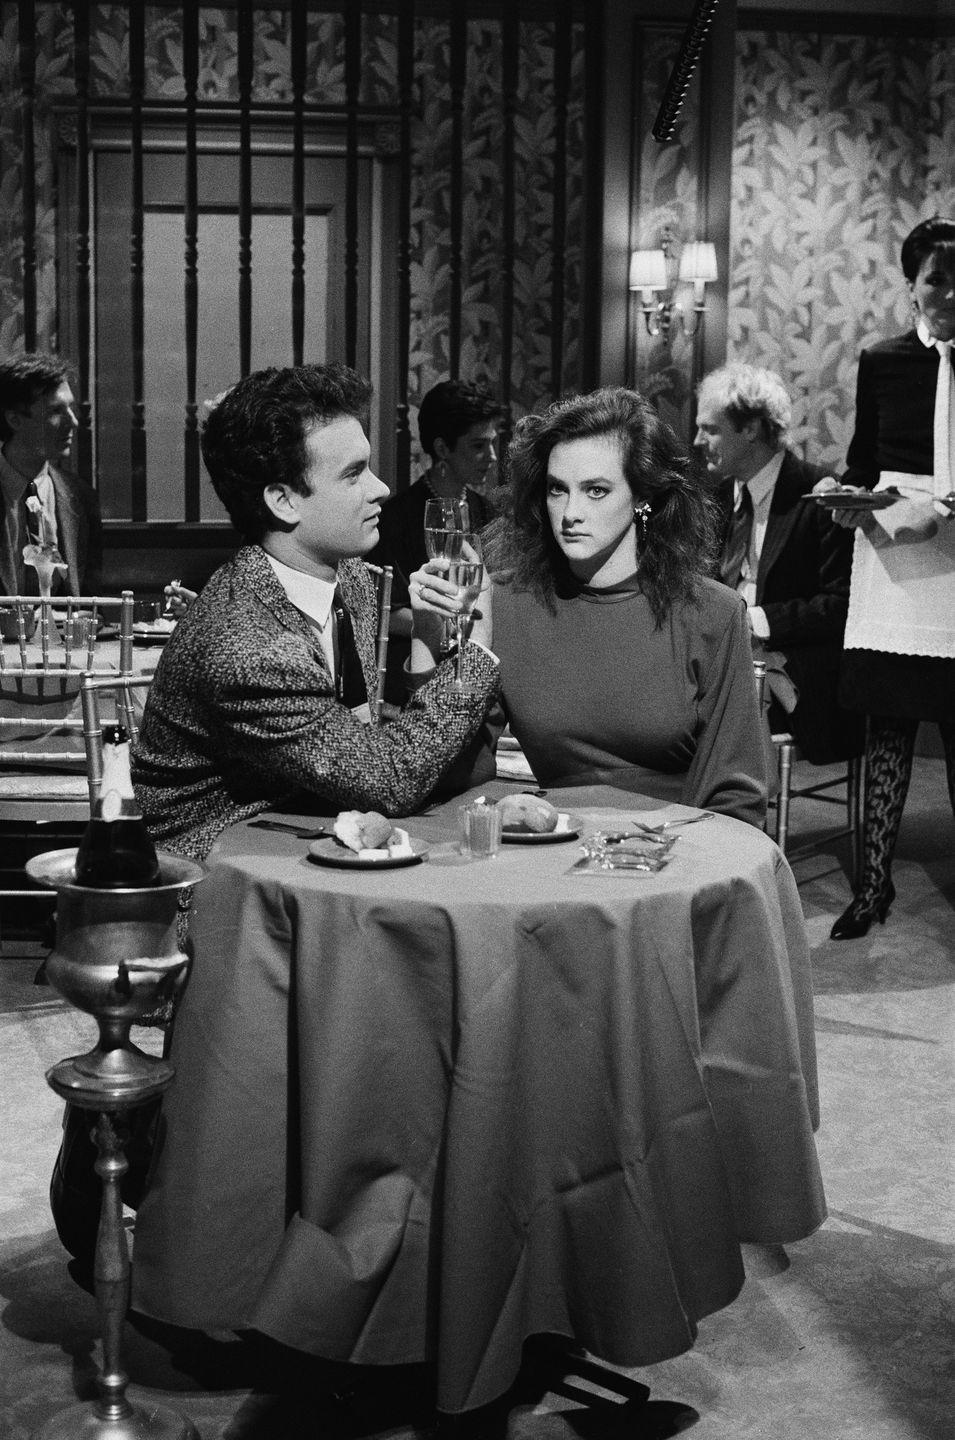 """<p>When Lorne Michaels returned to produce <em>SNL</em> in 1985, he hired all new cast members, including Joan Cusack. After the season received low ratings, he fired nearly all of them, including Joan.</p><p><strong>RELATED:</strong> <a href=""""https://www.goodhousekeeping.com/life/g24225041/celebrities-related-to-each-other/"""" rel=""""nofollow noopener"""" target=""""_blank"""" data-ylk=""""slk:Celebrities You Didn't Know Were Related"""" class=""""link rapid-noclick-resp"""">Celebrities You Didn't Know Were Related</a></p>"""